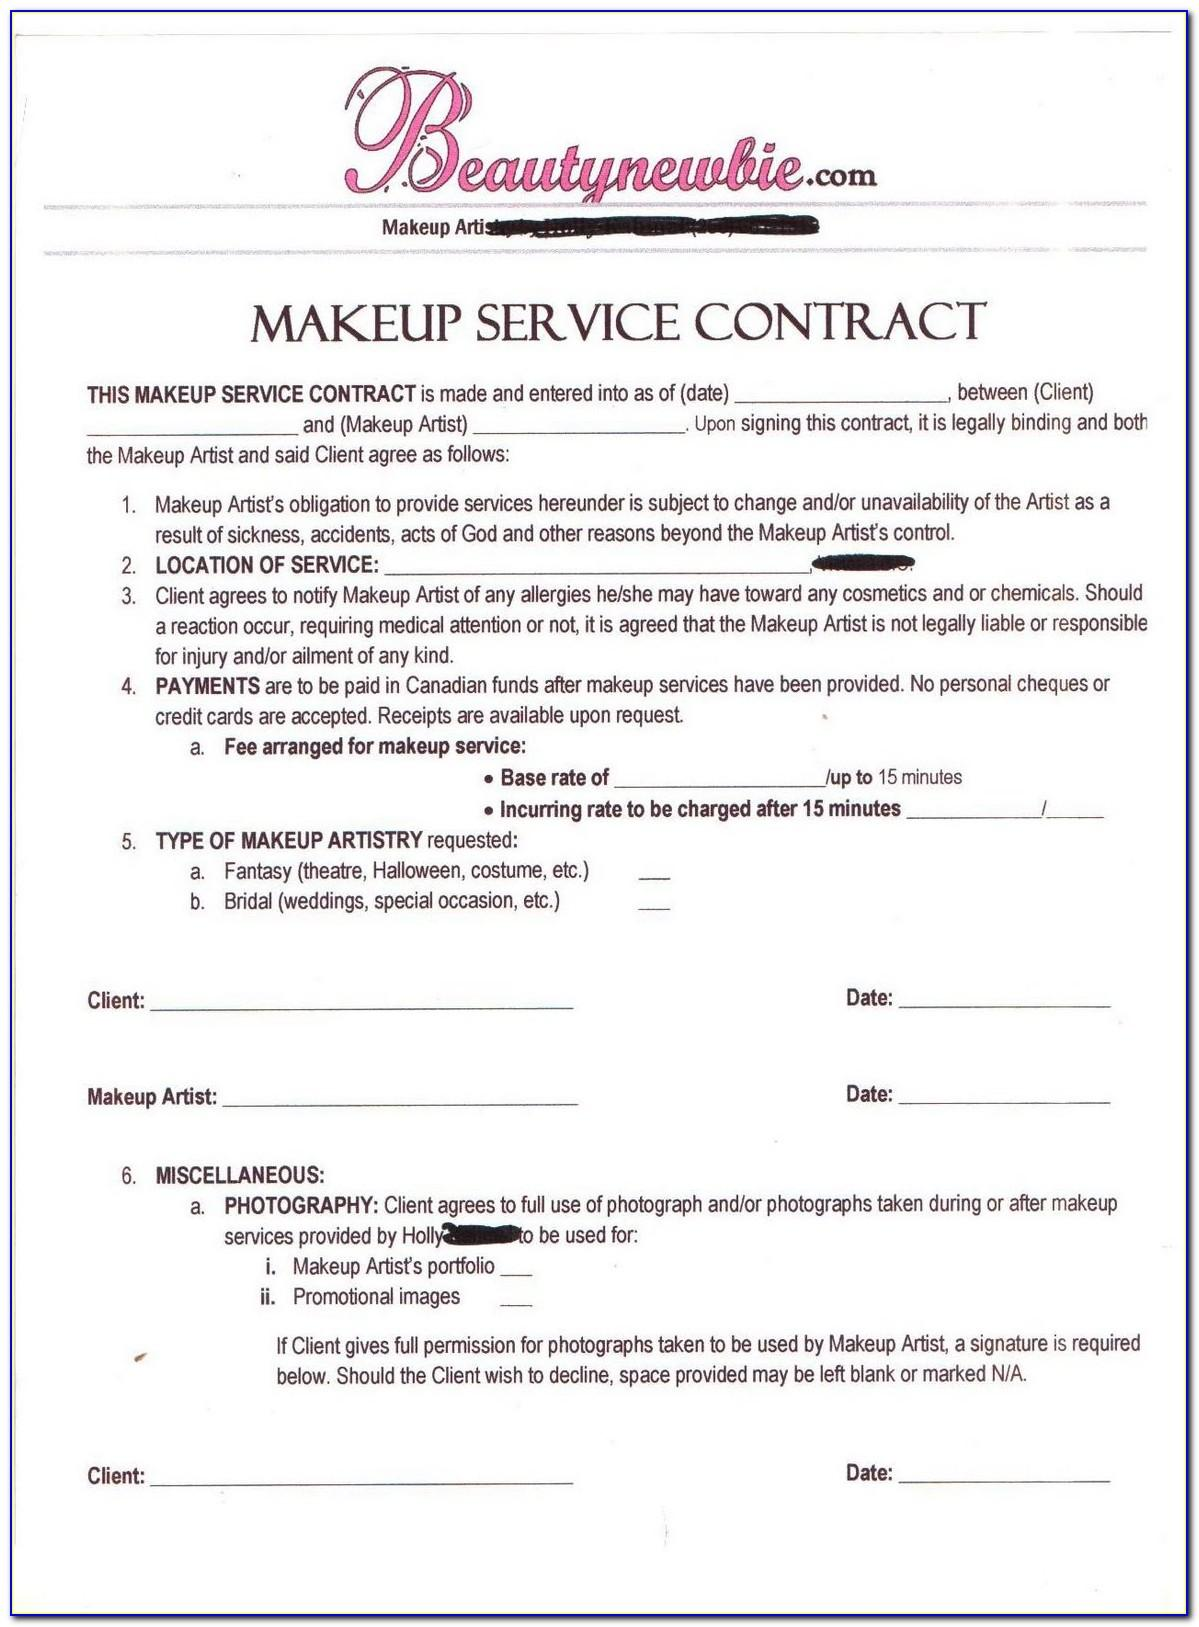 Freelance Makeup Artist Contract Sample